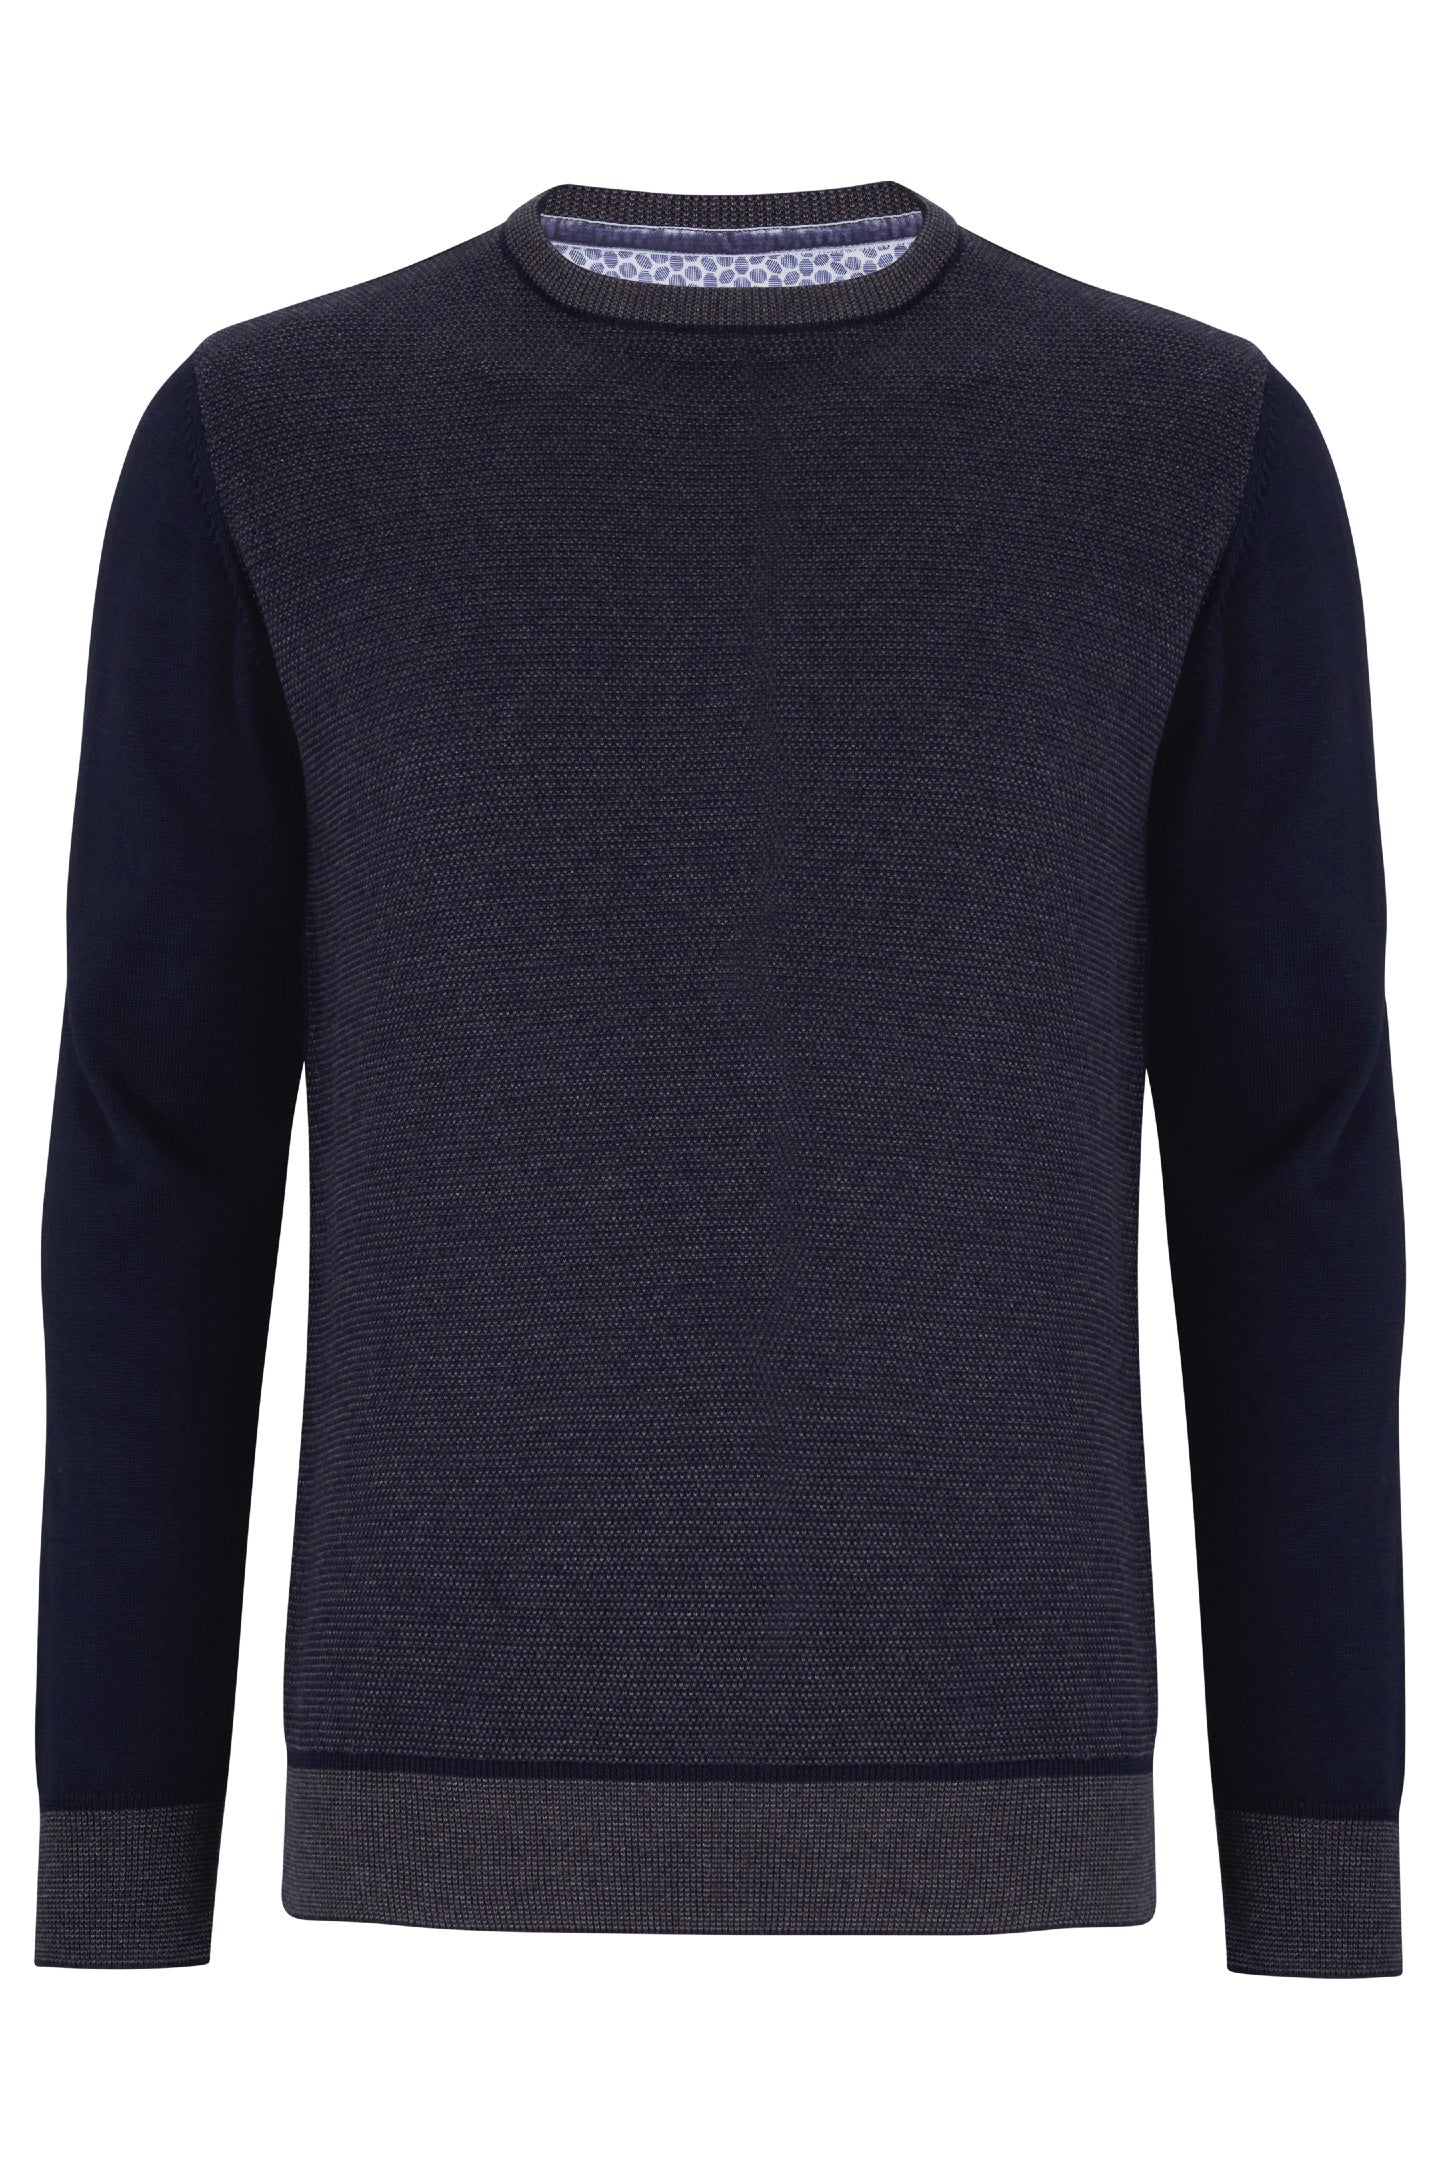 Benetti Trevor Crew Neck Sweater